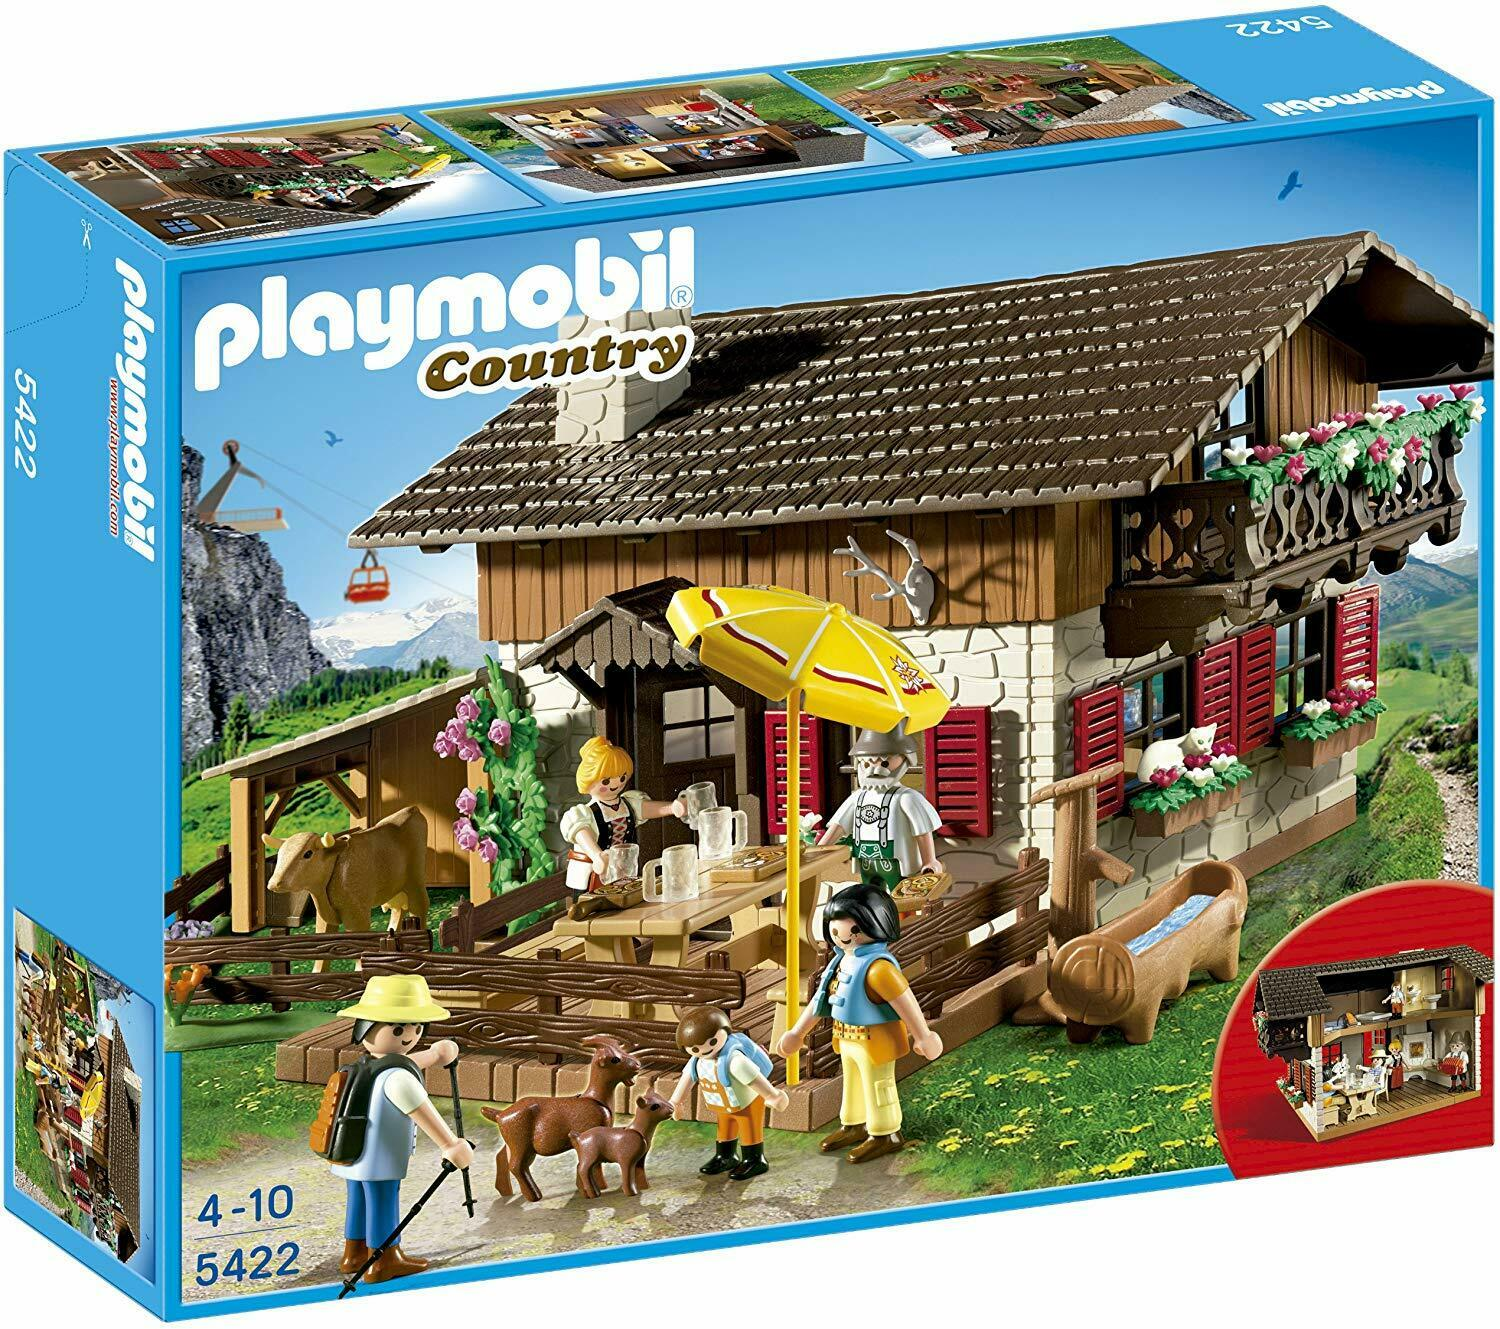 Playmobil 5422 Country Alpine Mountain Lodge Figures Accessories Role Play